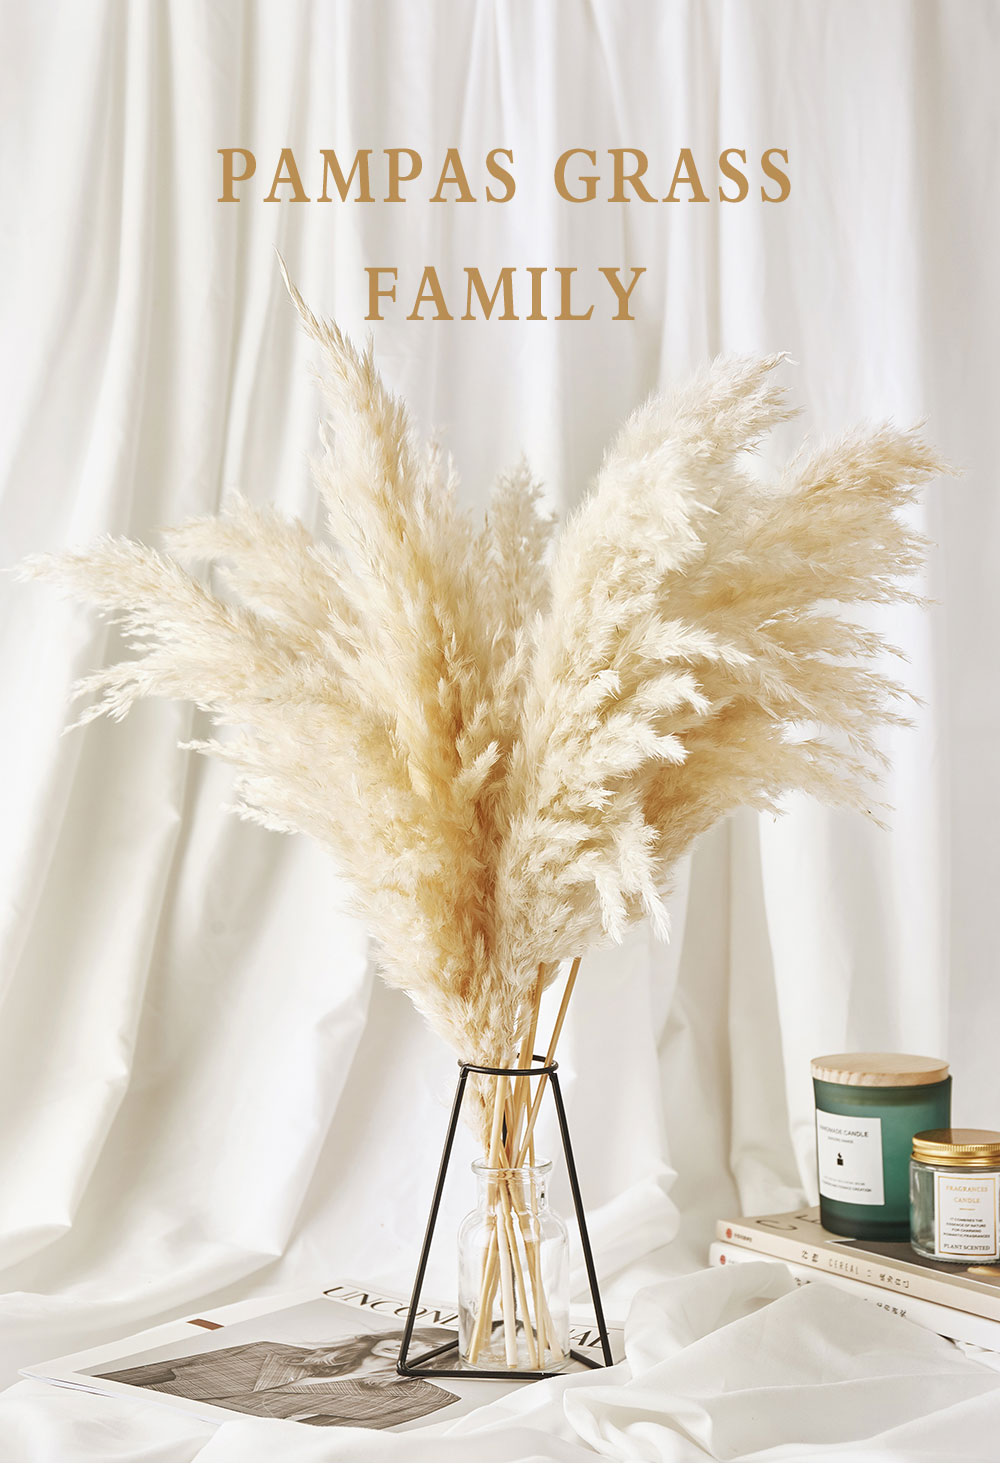 Pampas Grass Decor White Color Fluffy Natural Dried Flowers Bleached Bouquet Boho Vintage Style for Wedding Home Christmas Decor